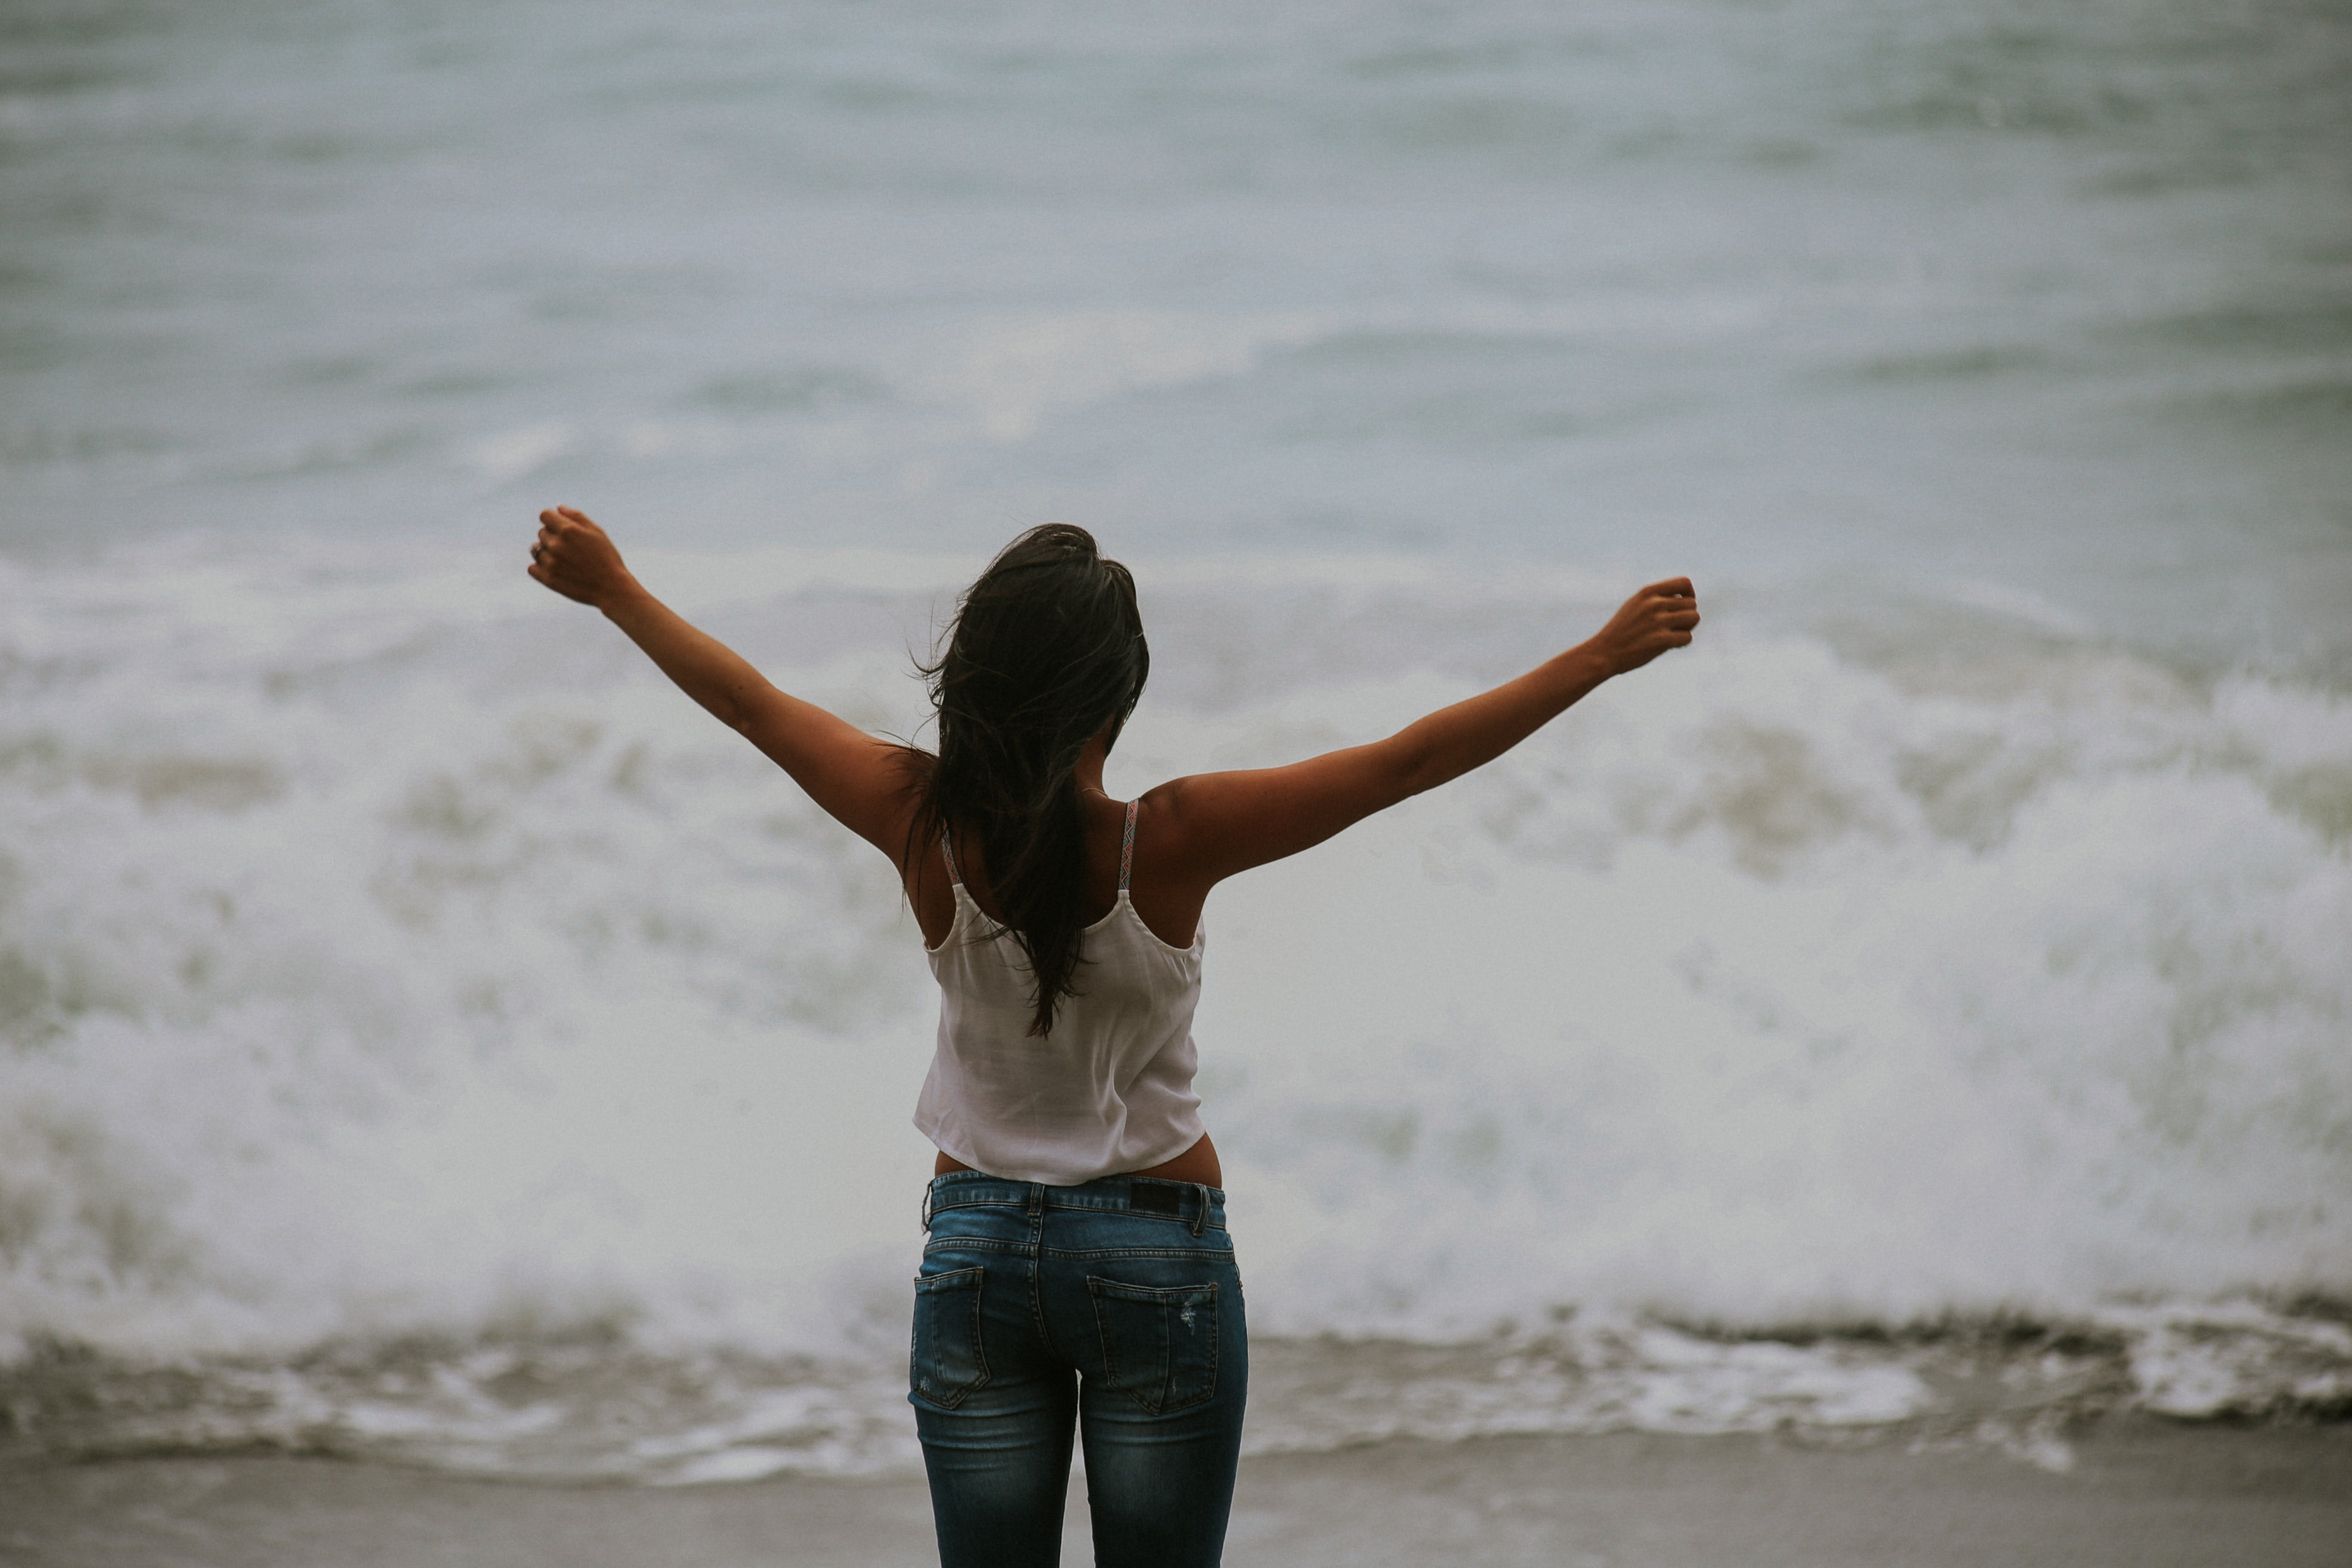 Woman triumphantly holding up arms